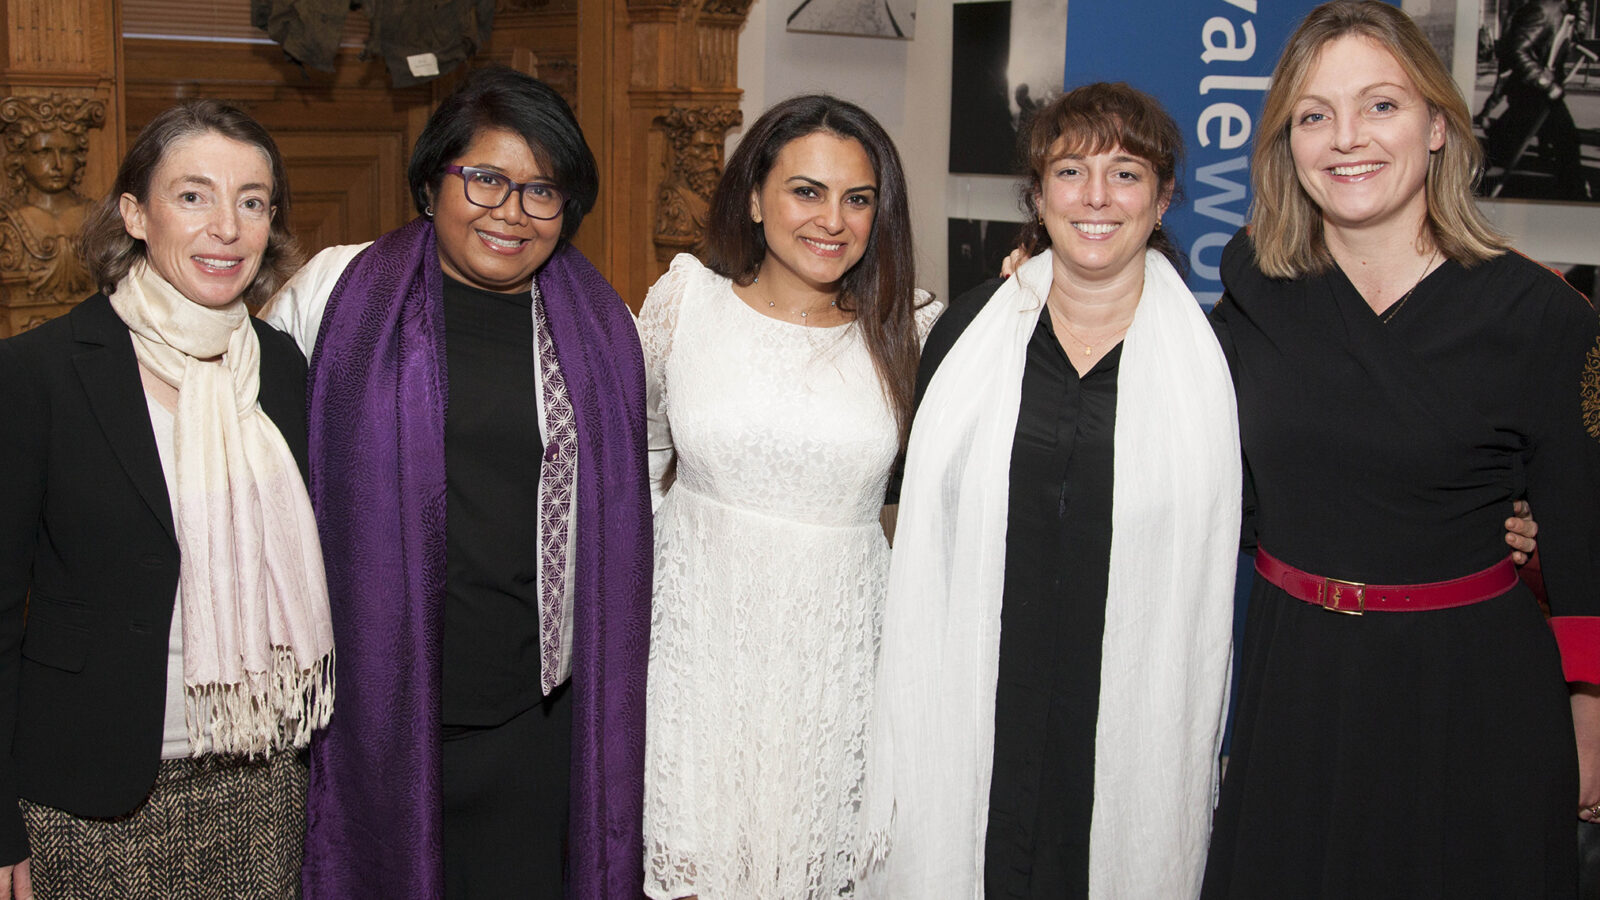 2015 Fellows conclude time at Yale photo